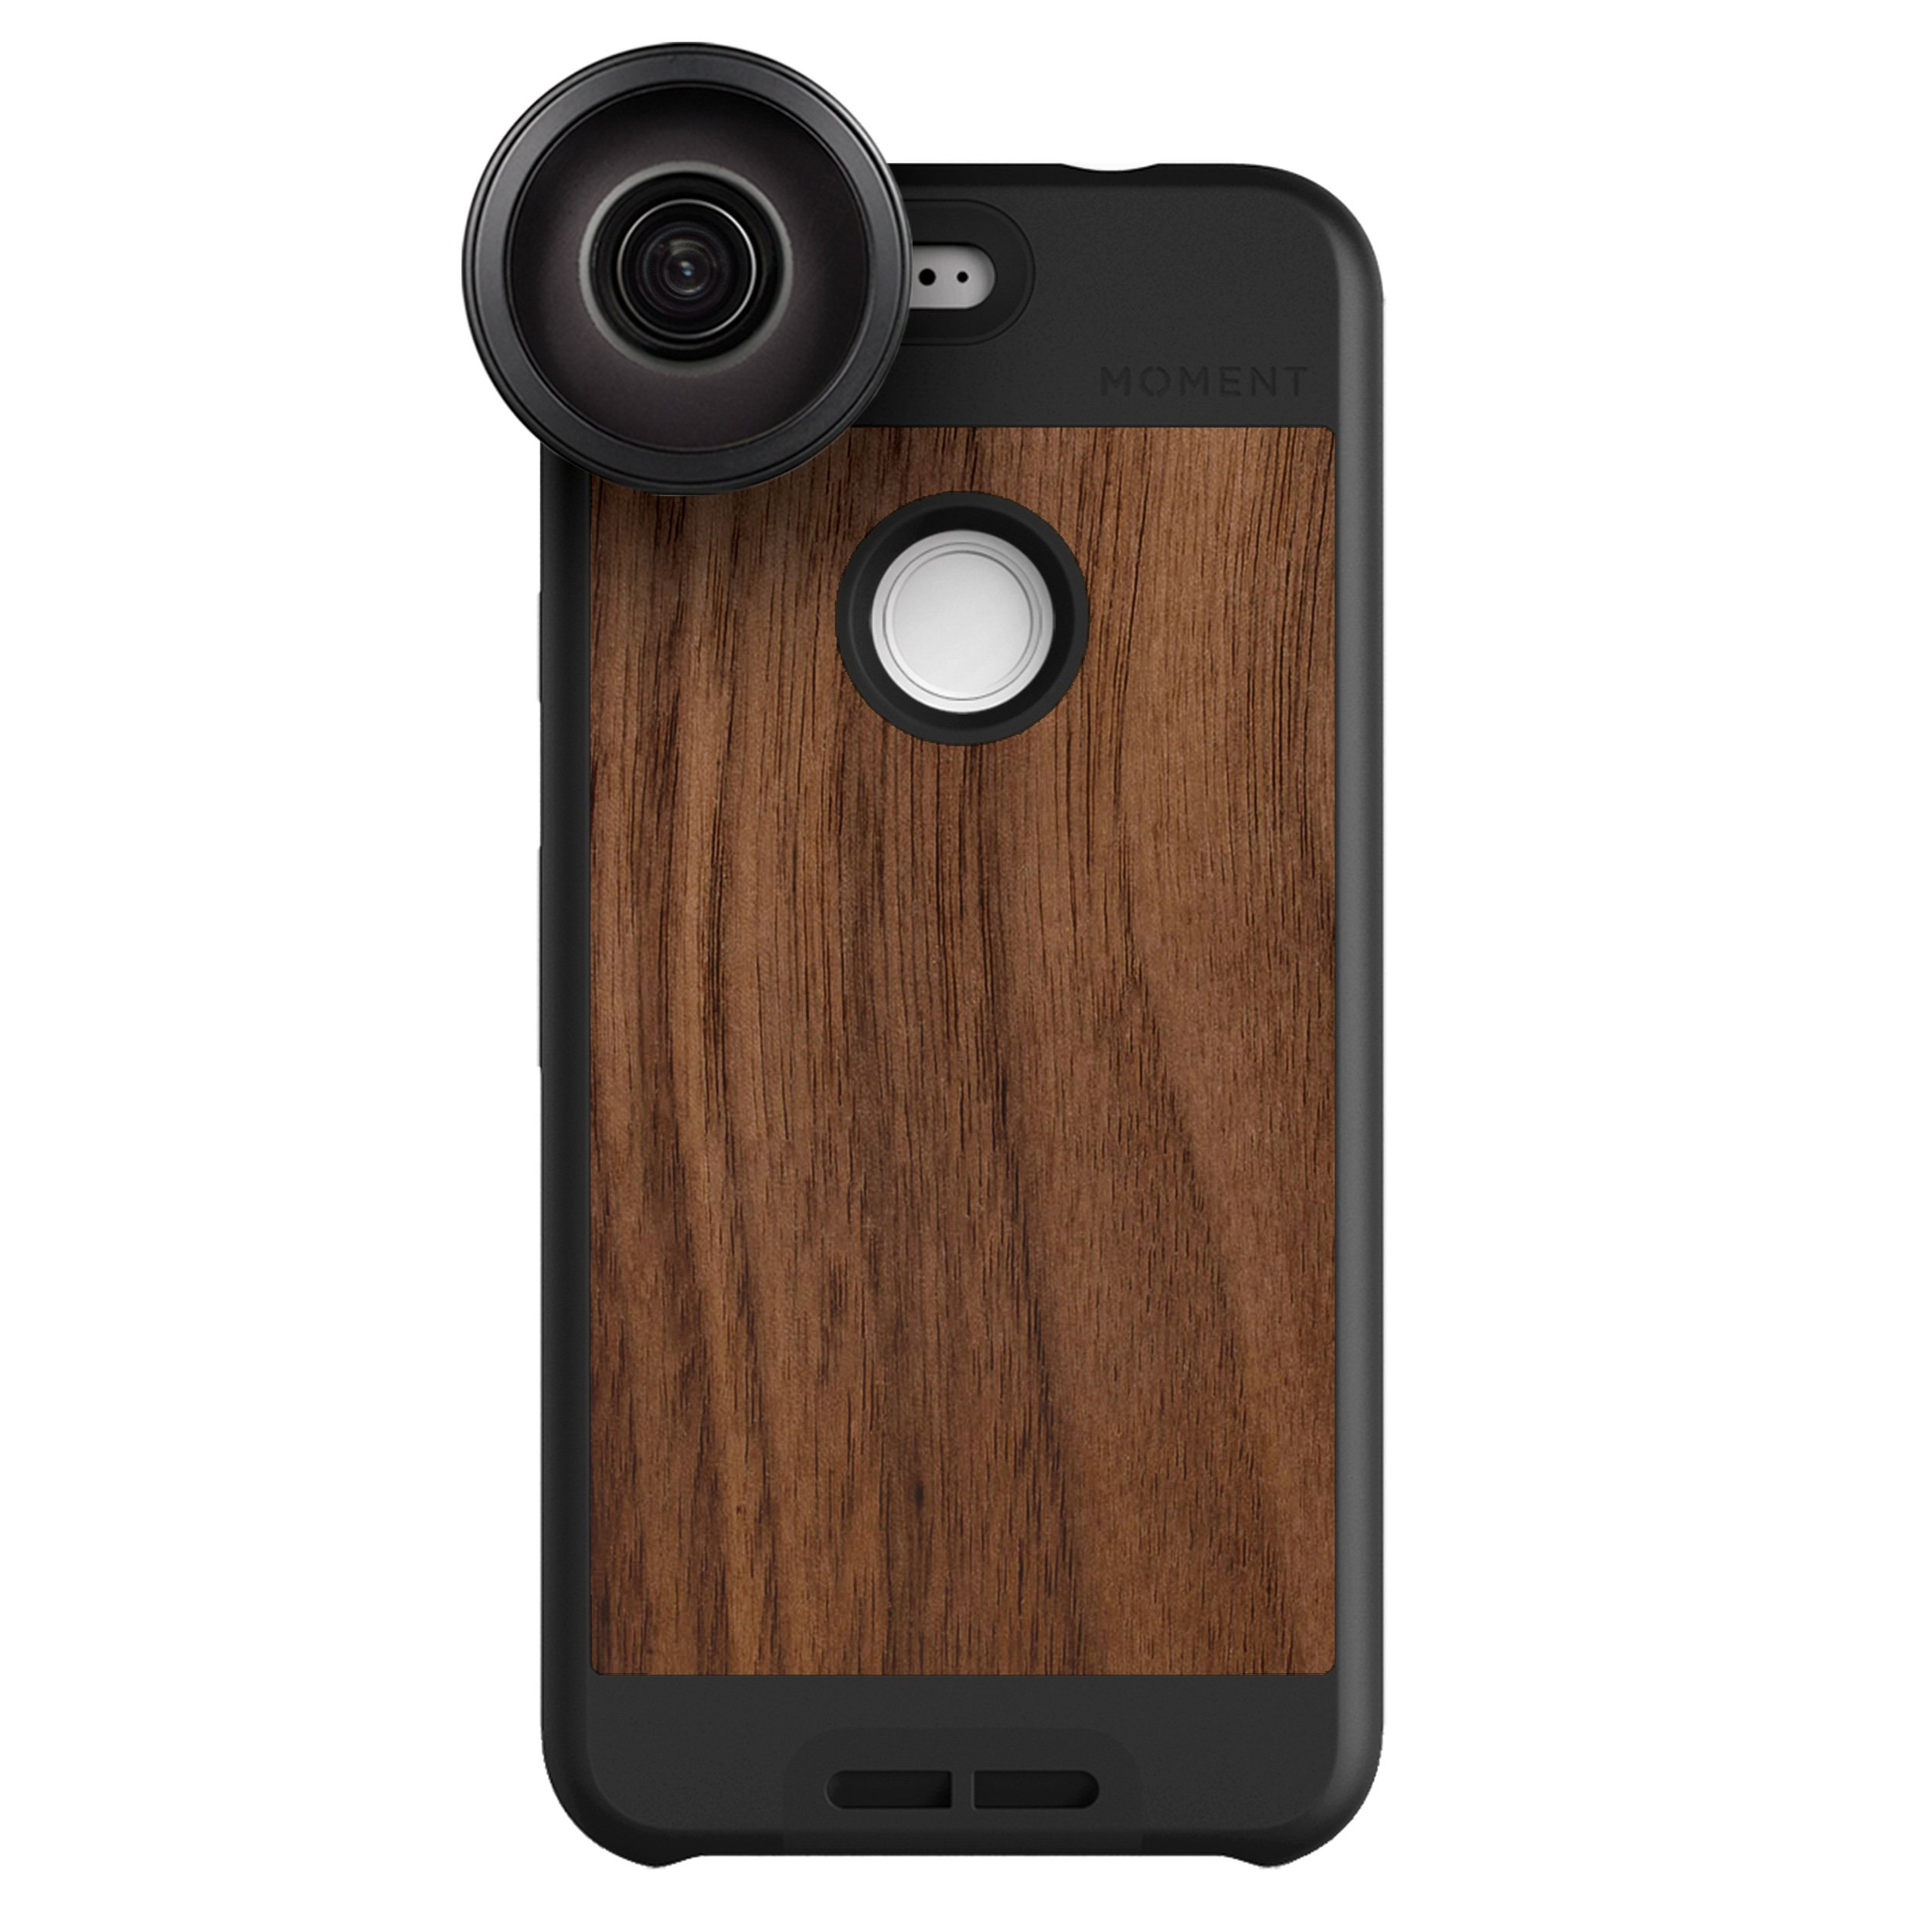 Google Pixel Case with Fisheye Lens Kit    Moment Walnut Wood Photo Case plus Superfish Lens    Best google fisheye attachment lens with thin protective case.